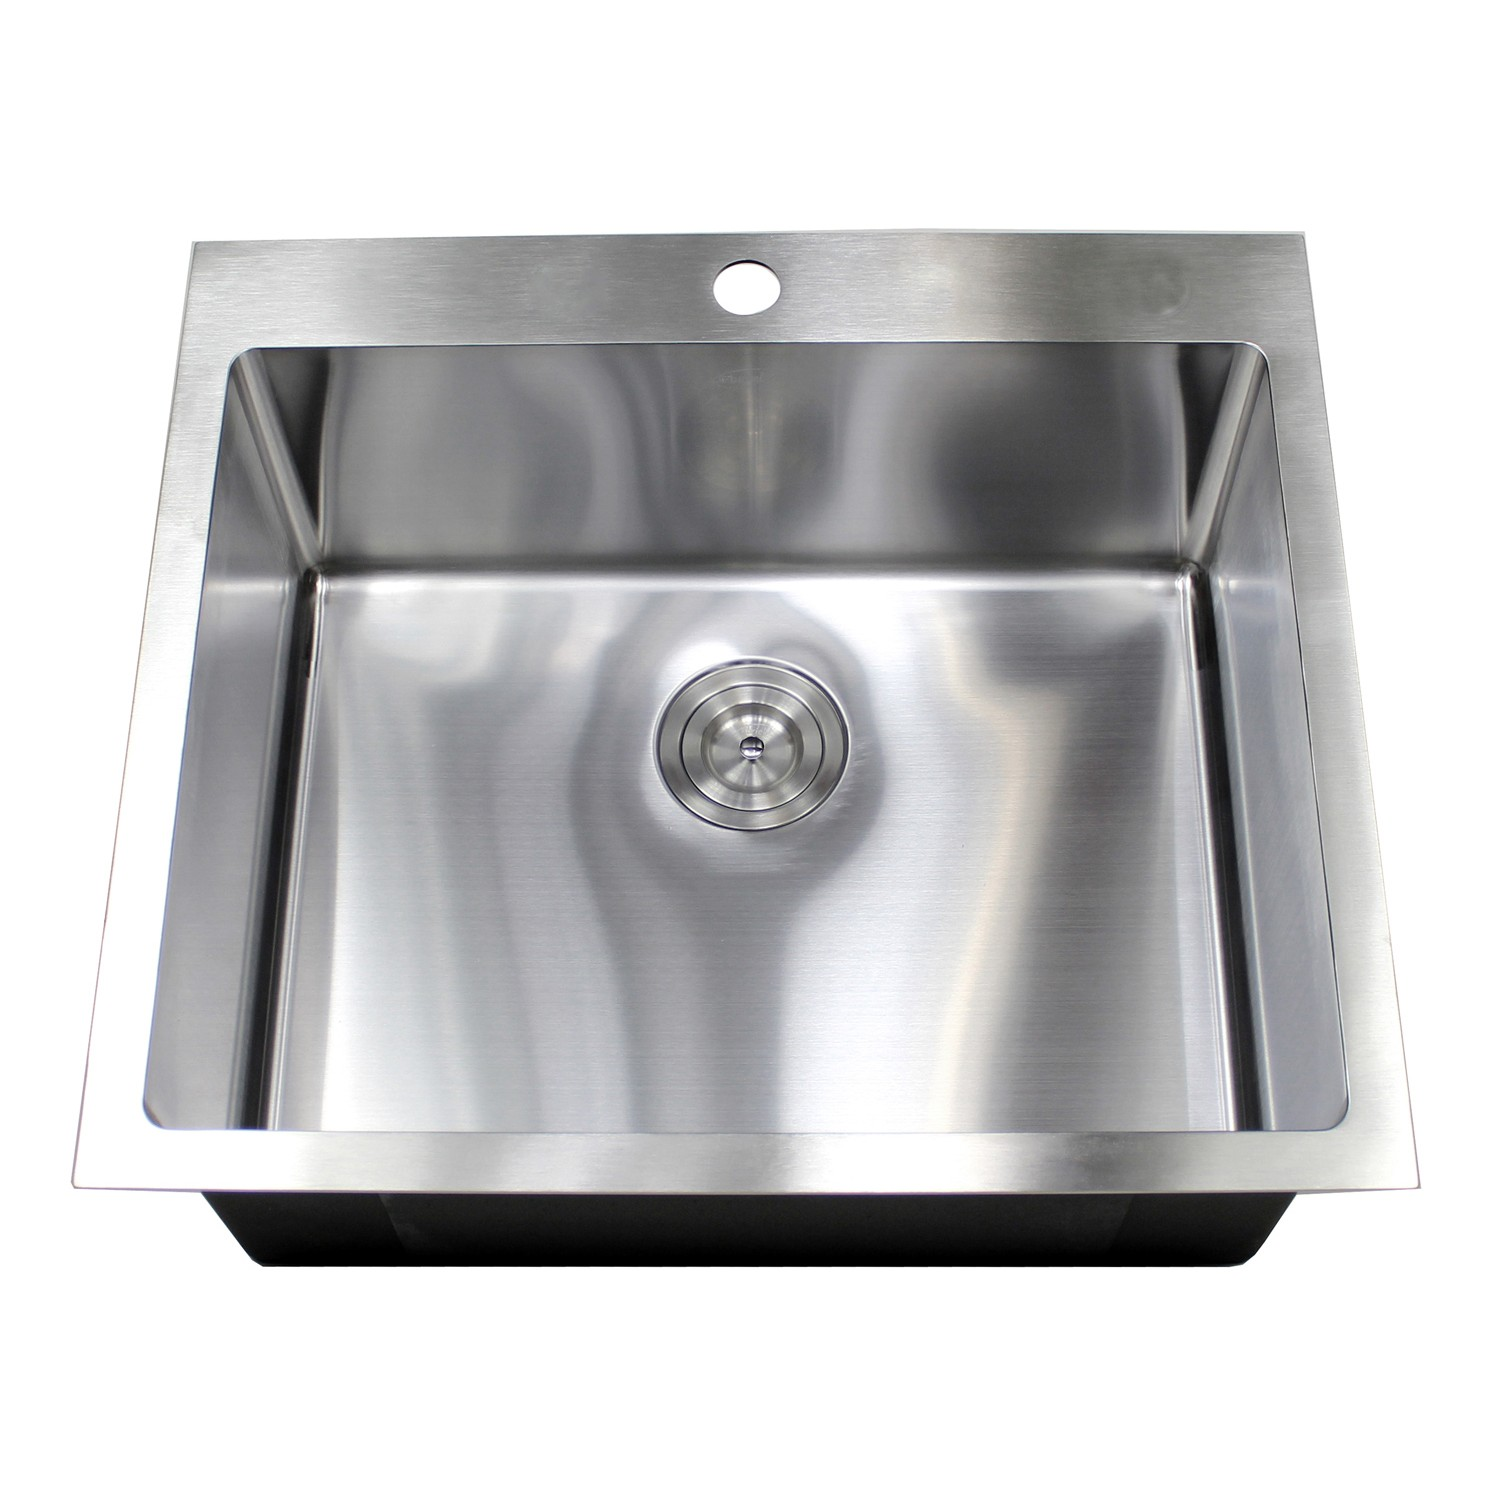 25 Inch Top-Mount / Drop-In Stainless Steel Single Bowl